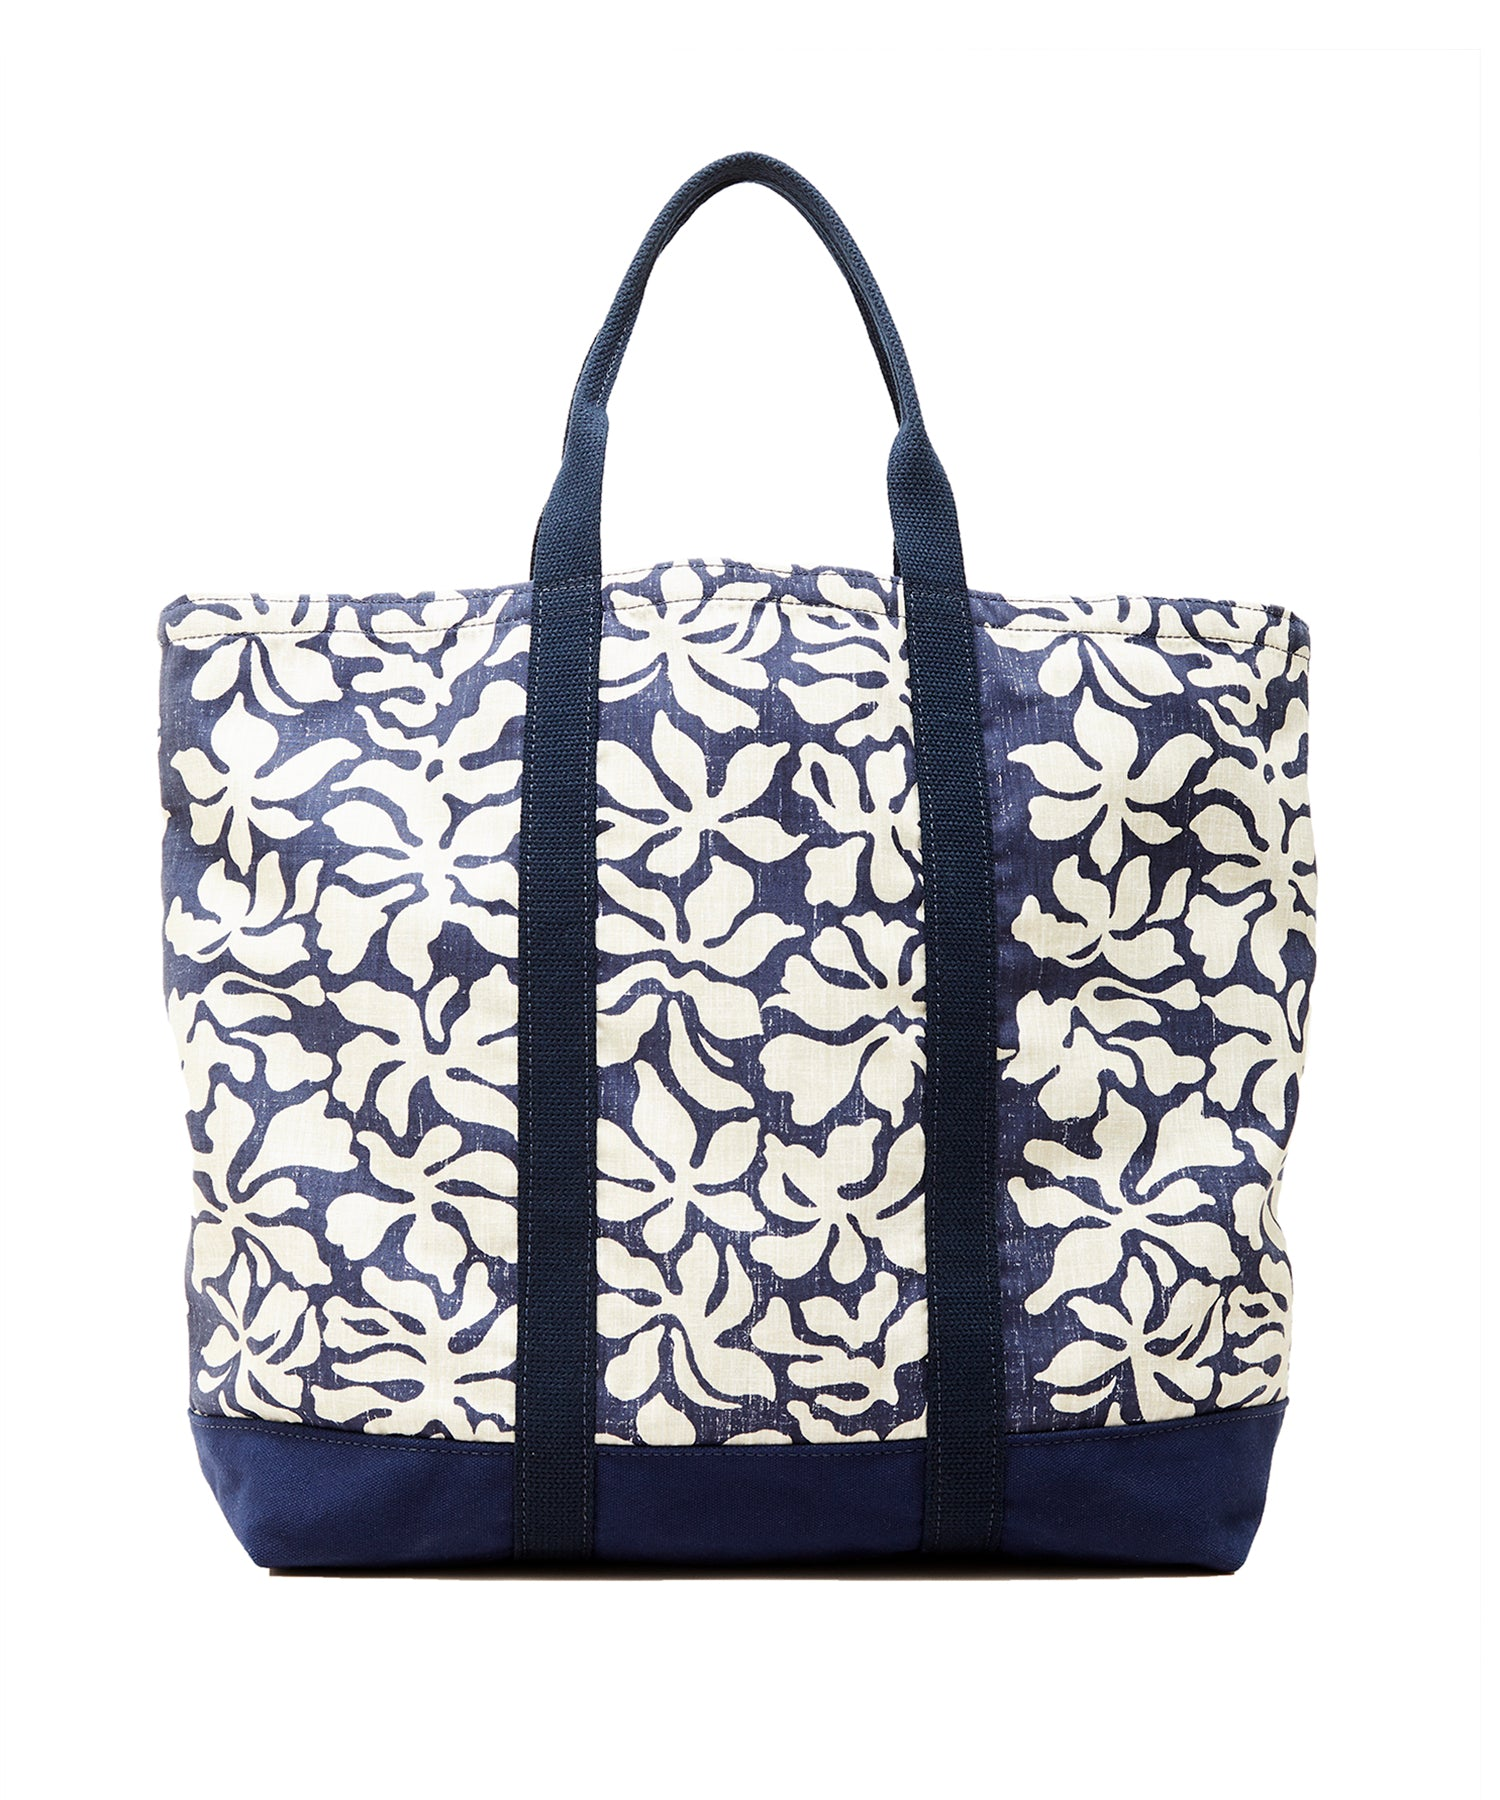 Exclusive Reyn Spooner + Todd Snyder Windjammer Tote Bag in Navy